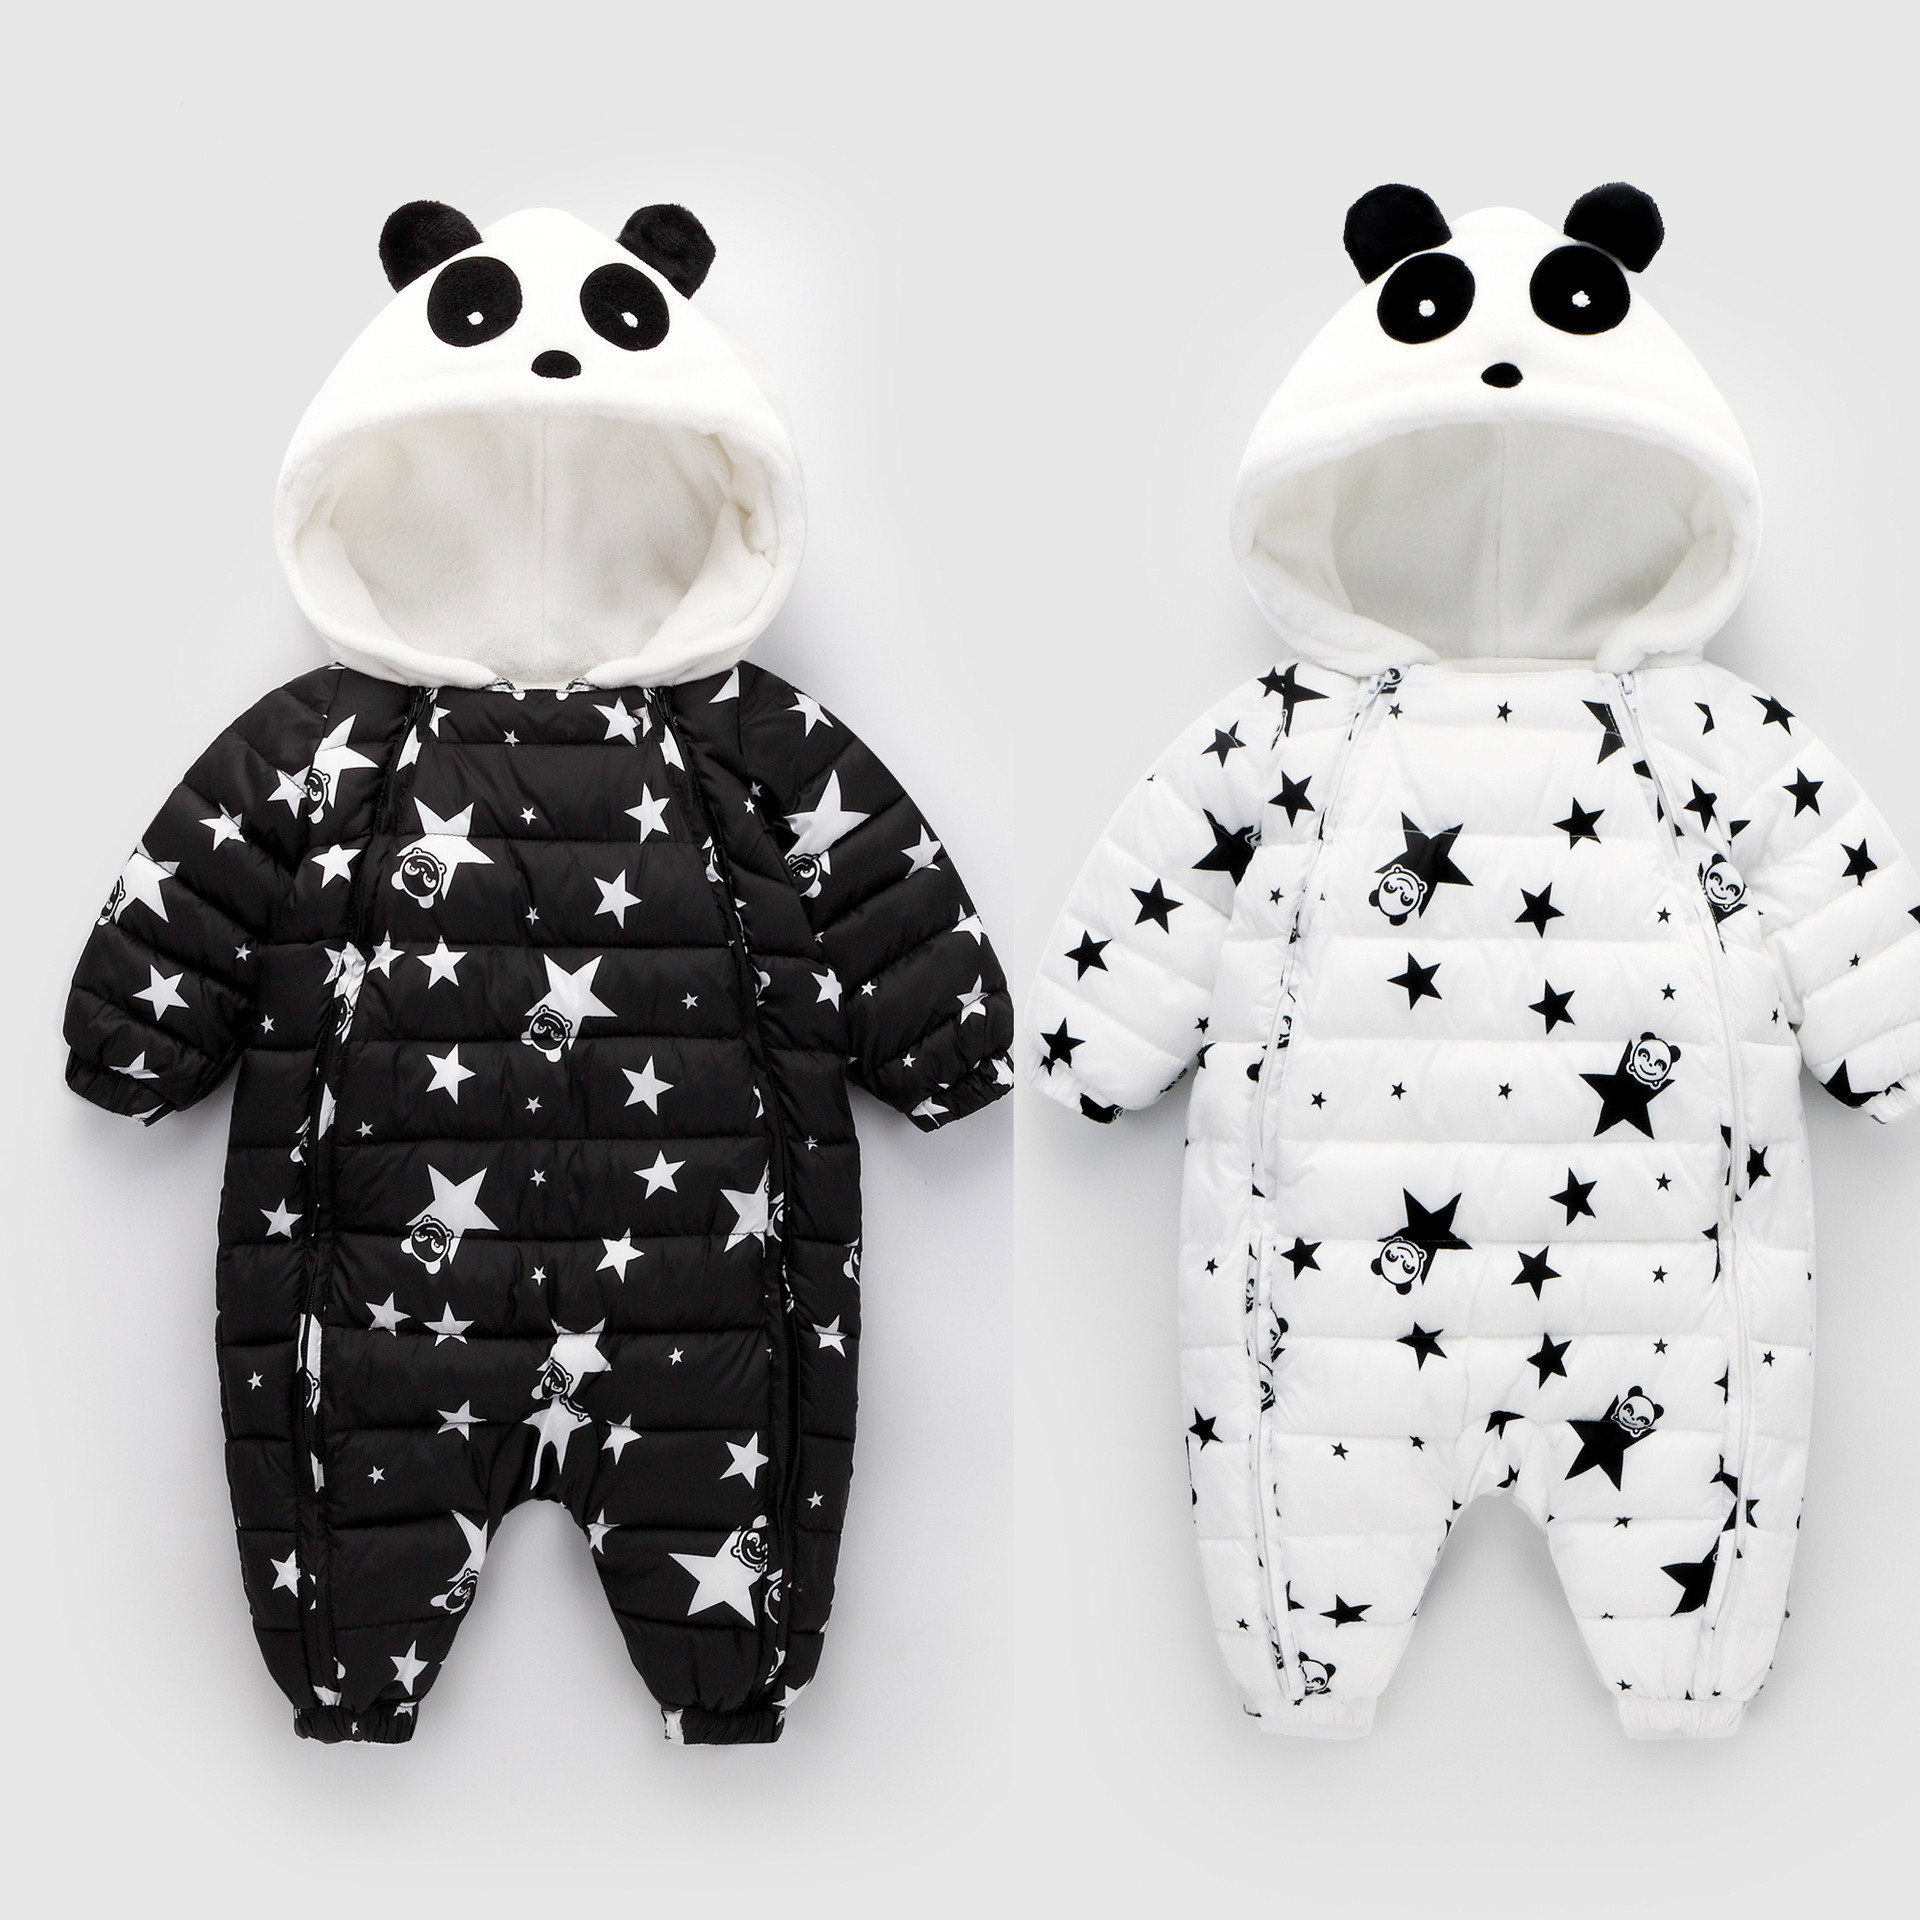 Winter Infant/Newborn Rompers Baby Girls Boys Warm Thick Jumpsuits Star Children Kids Hooded Coat One Piece Clothes 2 pieces lot winter coral fleece warm baby infant boys clothes girls hooded rompers newborn sleepwear kids children clothing